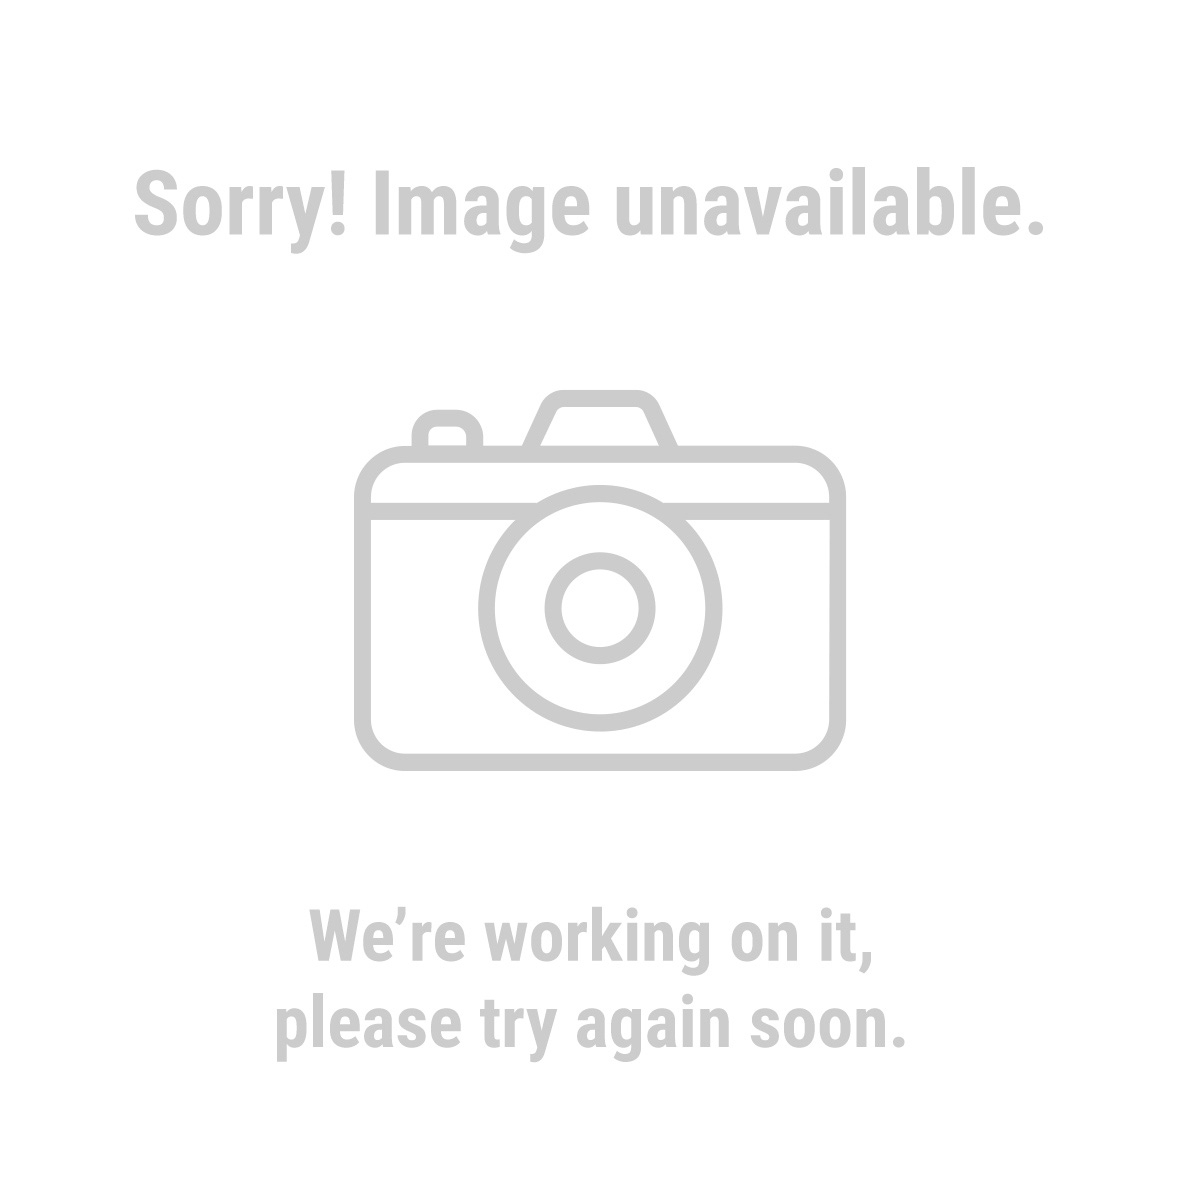 Pittsburgh® 66707 Grommet Pliers with 100 Grommets